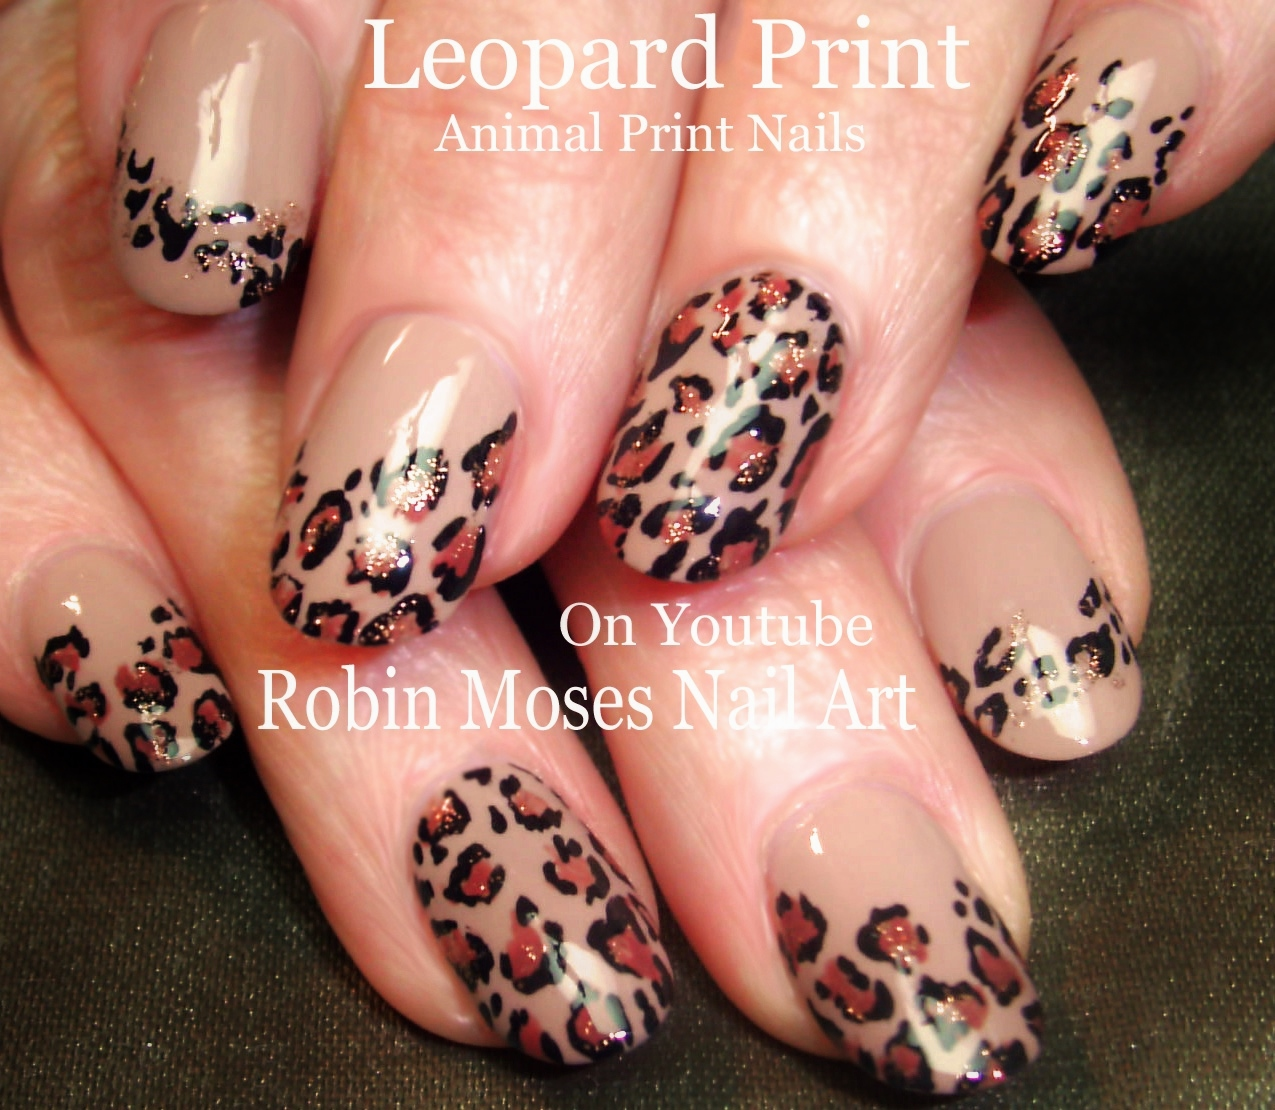 Leopard Print Nails Design Tutorials!